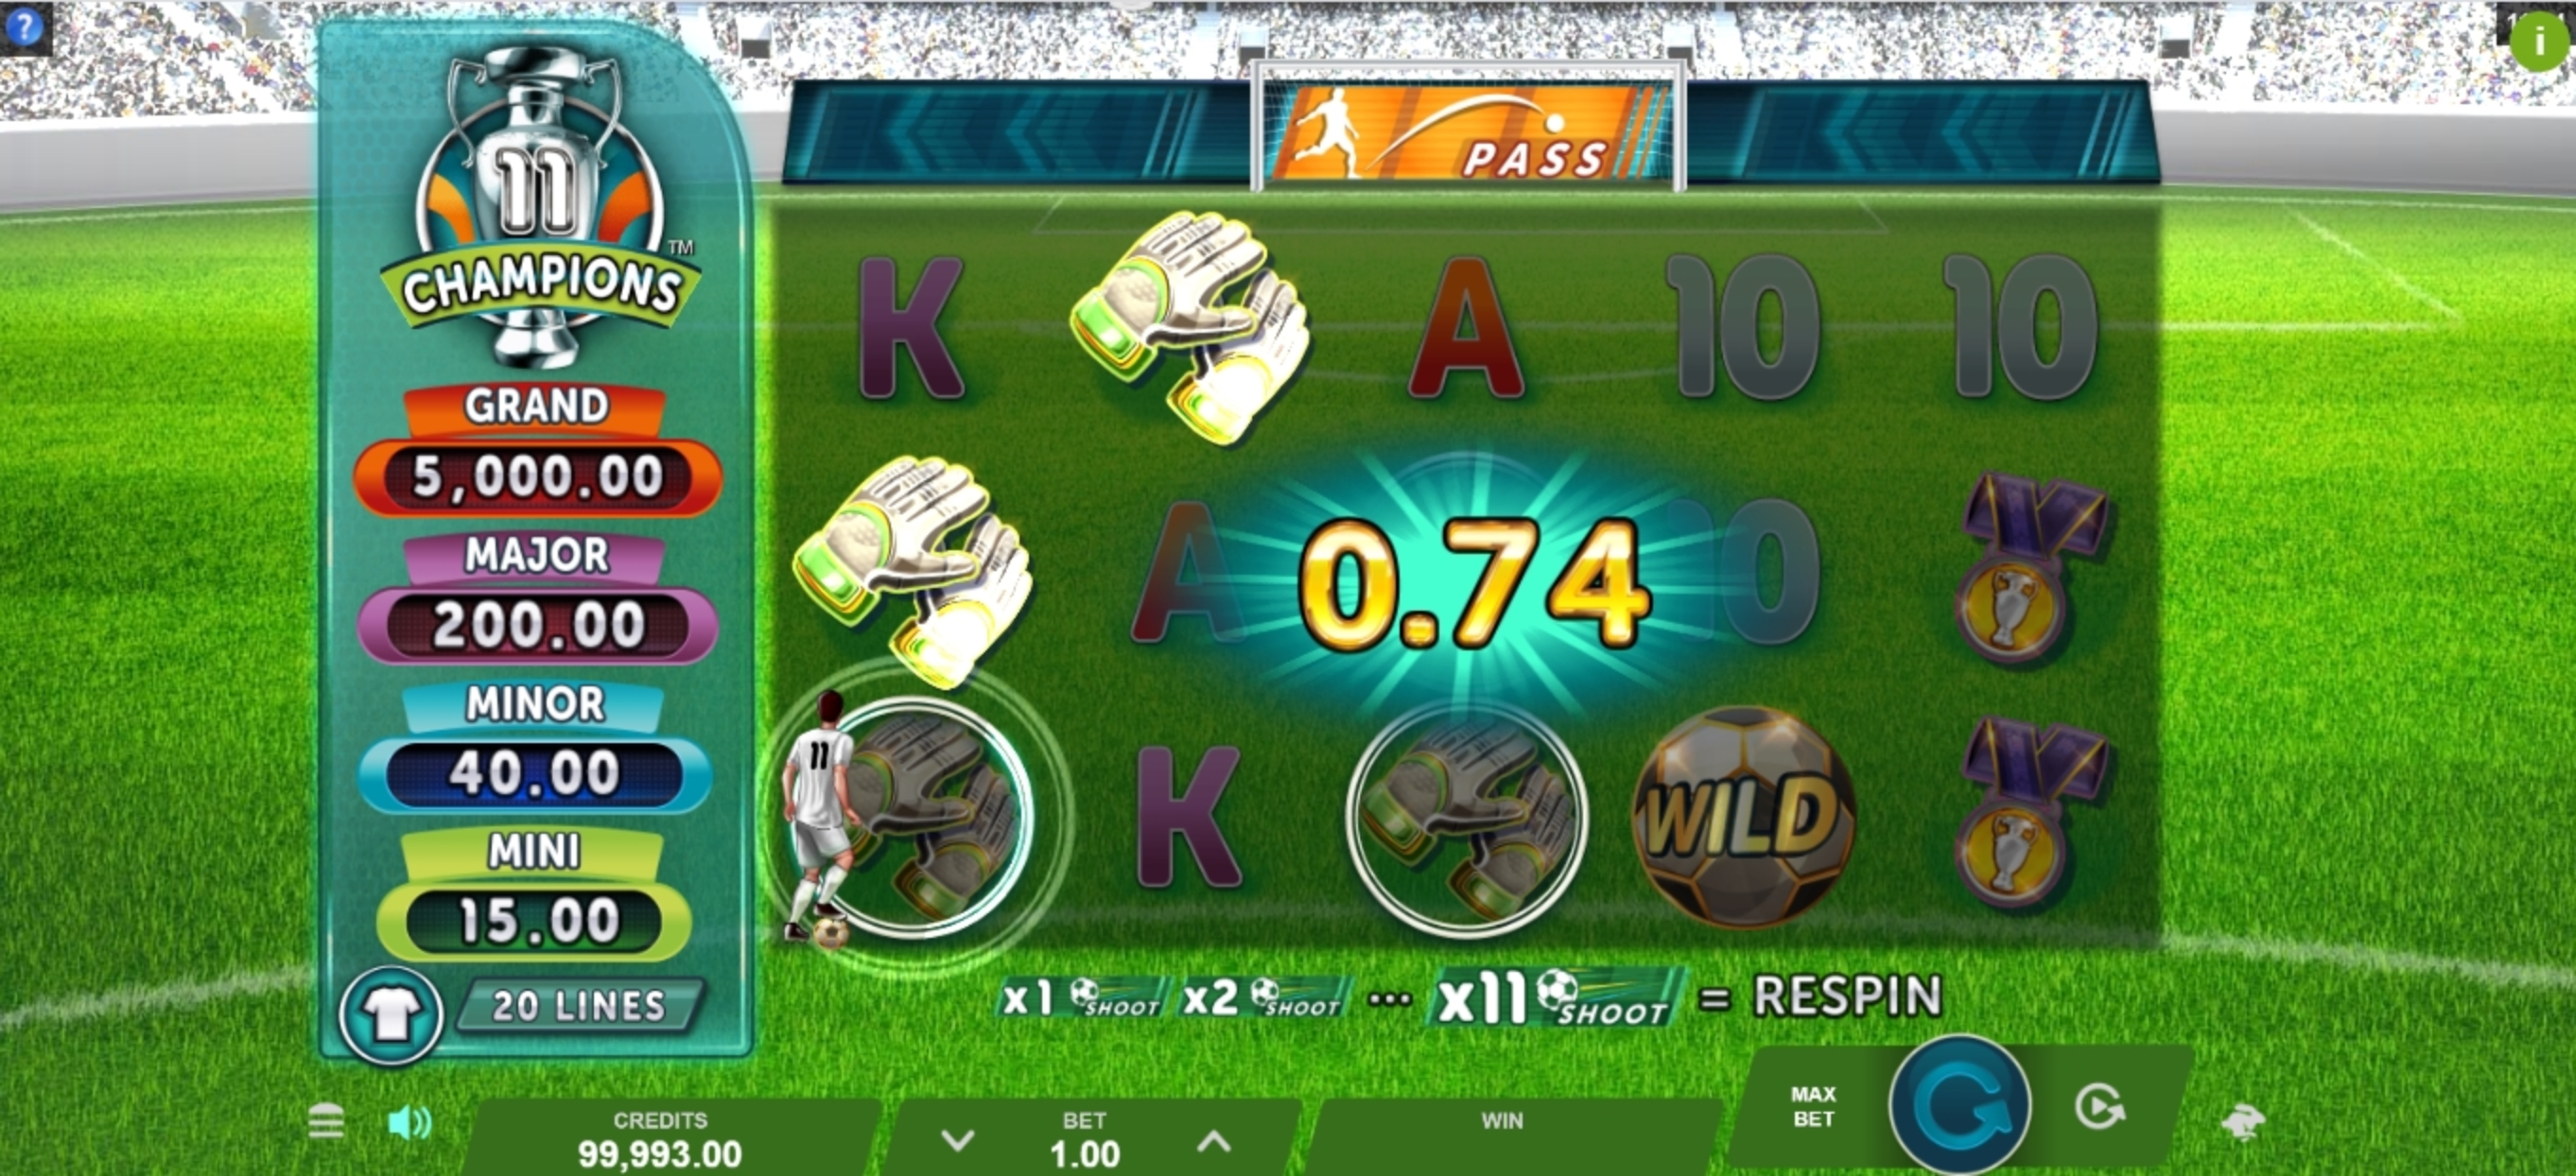 Win Money in 11 Champions Free Slot Game by Gameburger Studios